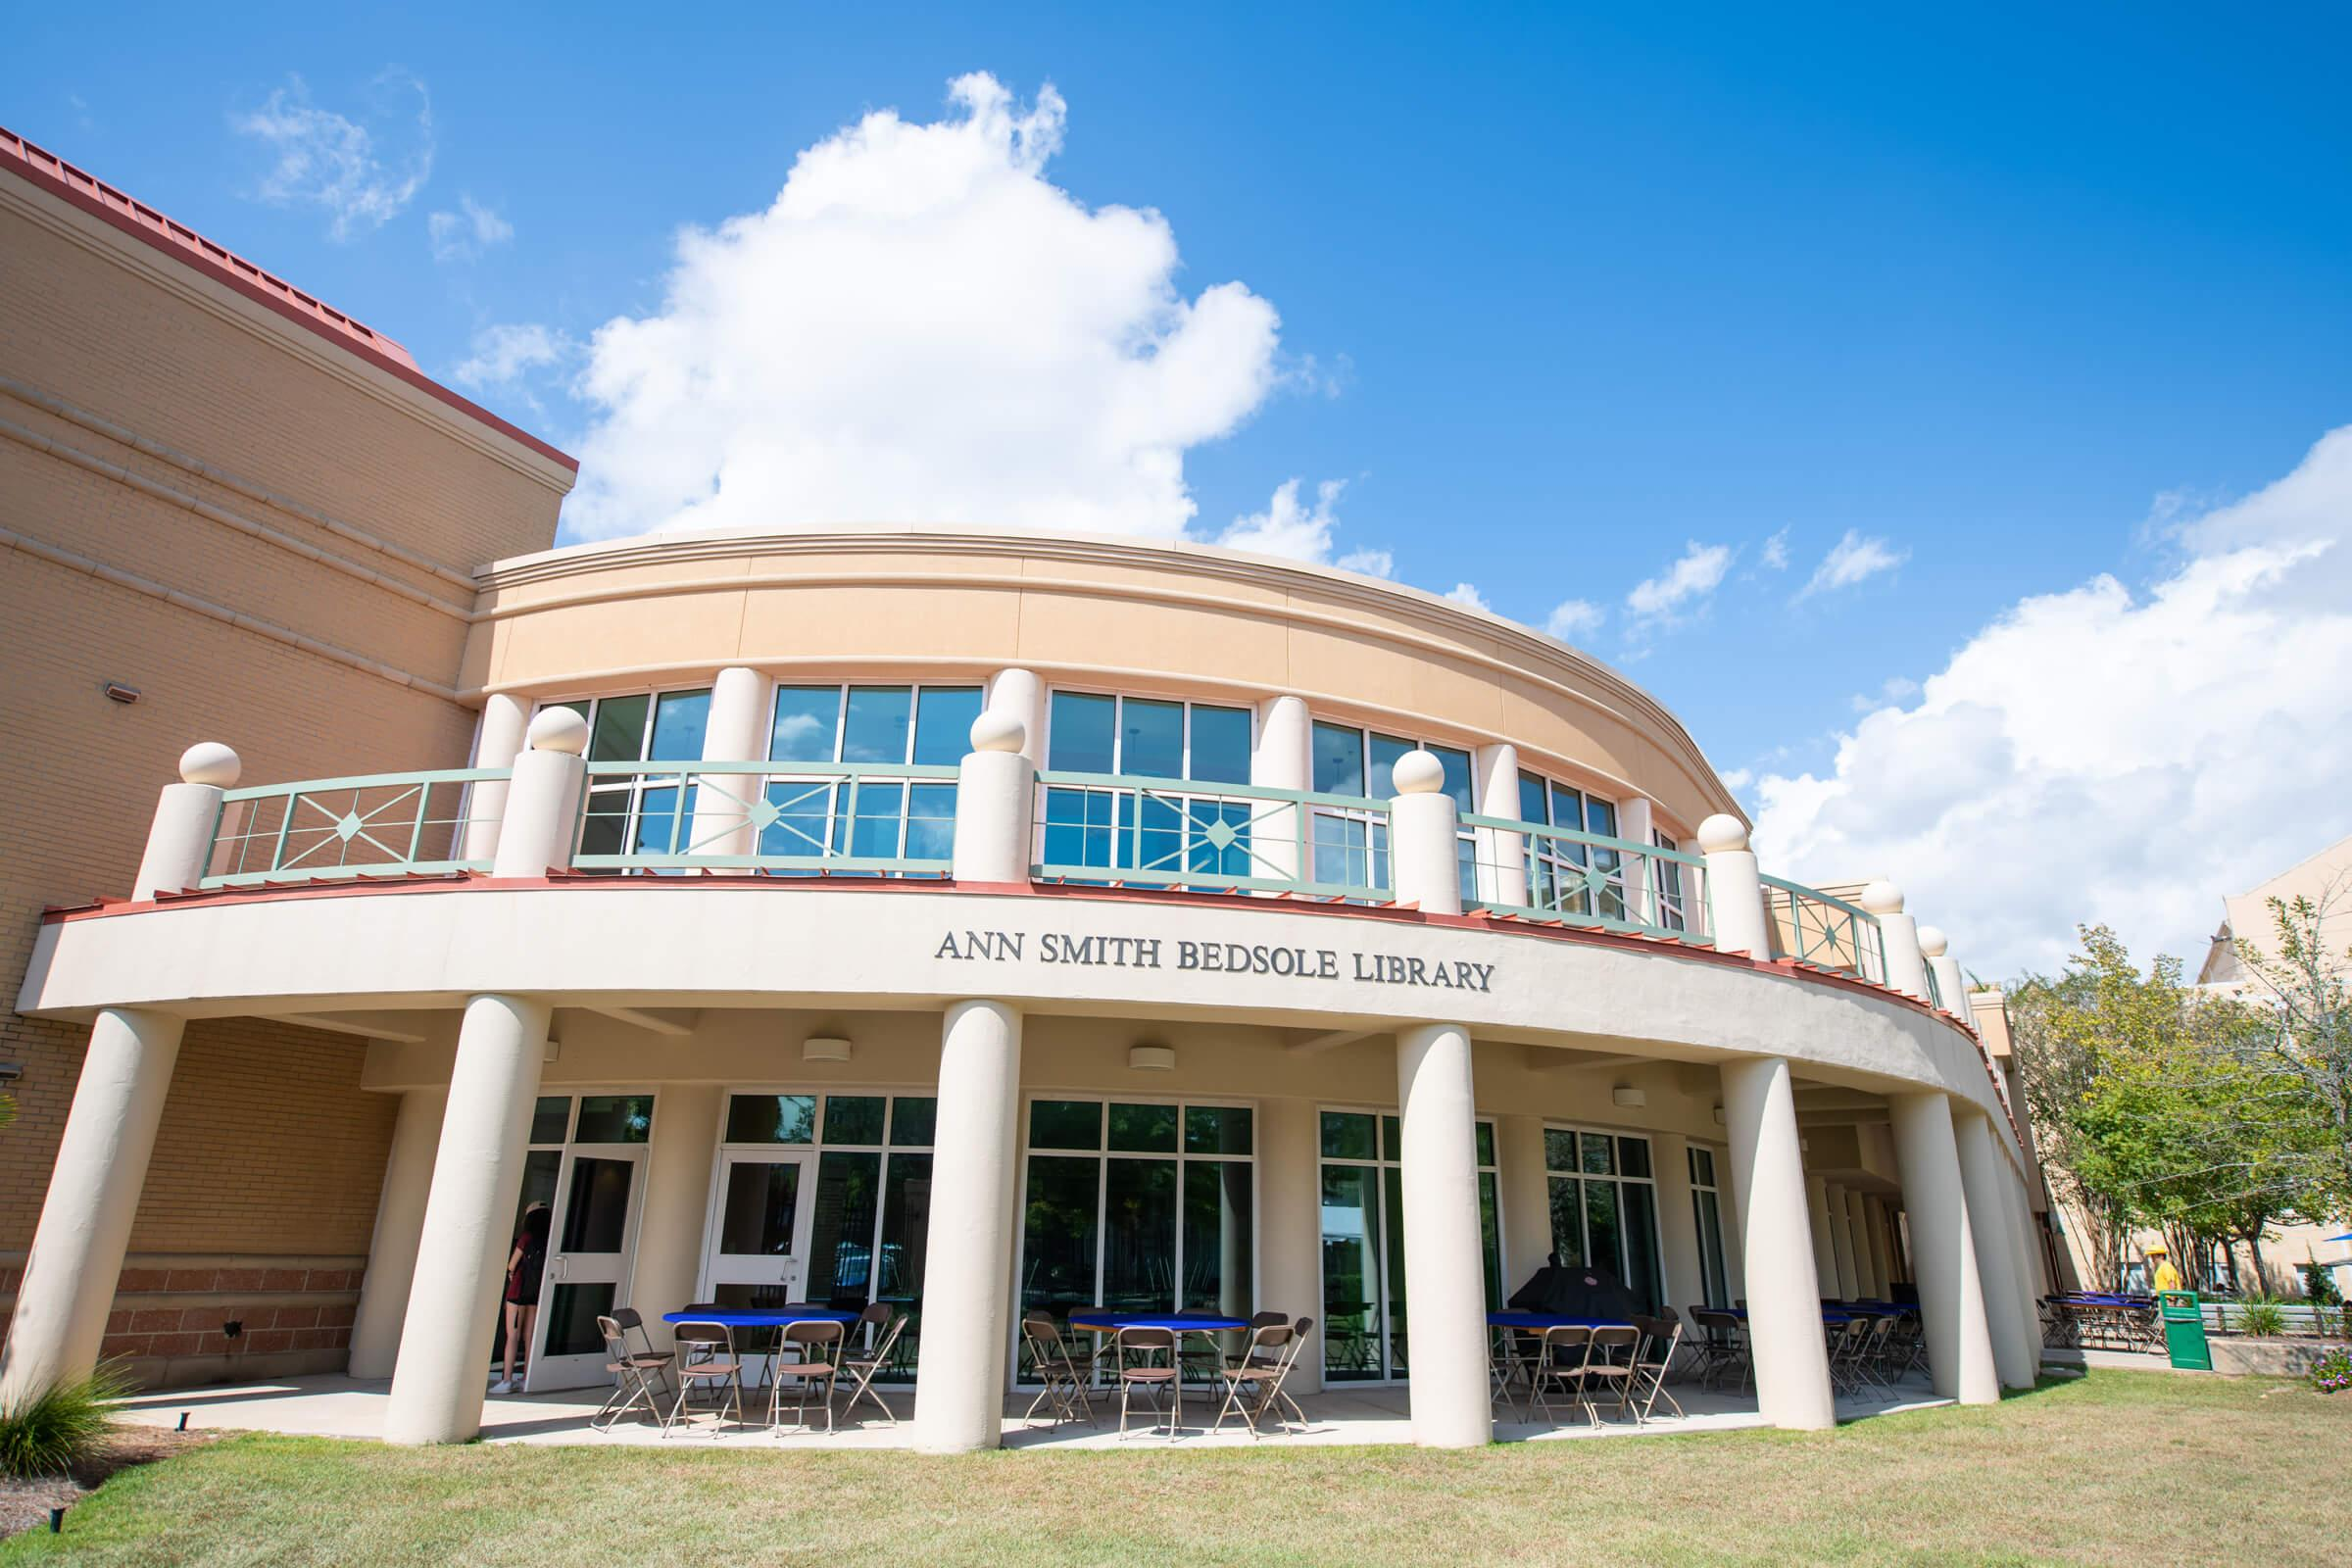 Wideangle photo of the Ann Smith Bedsole Library exterior